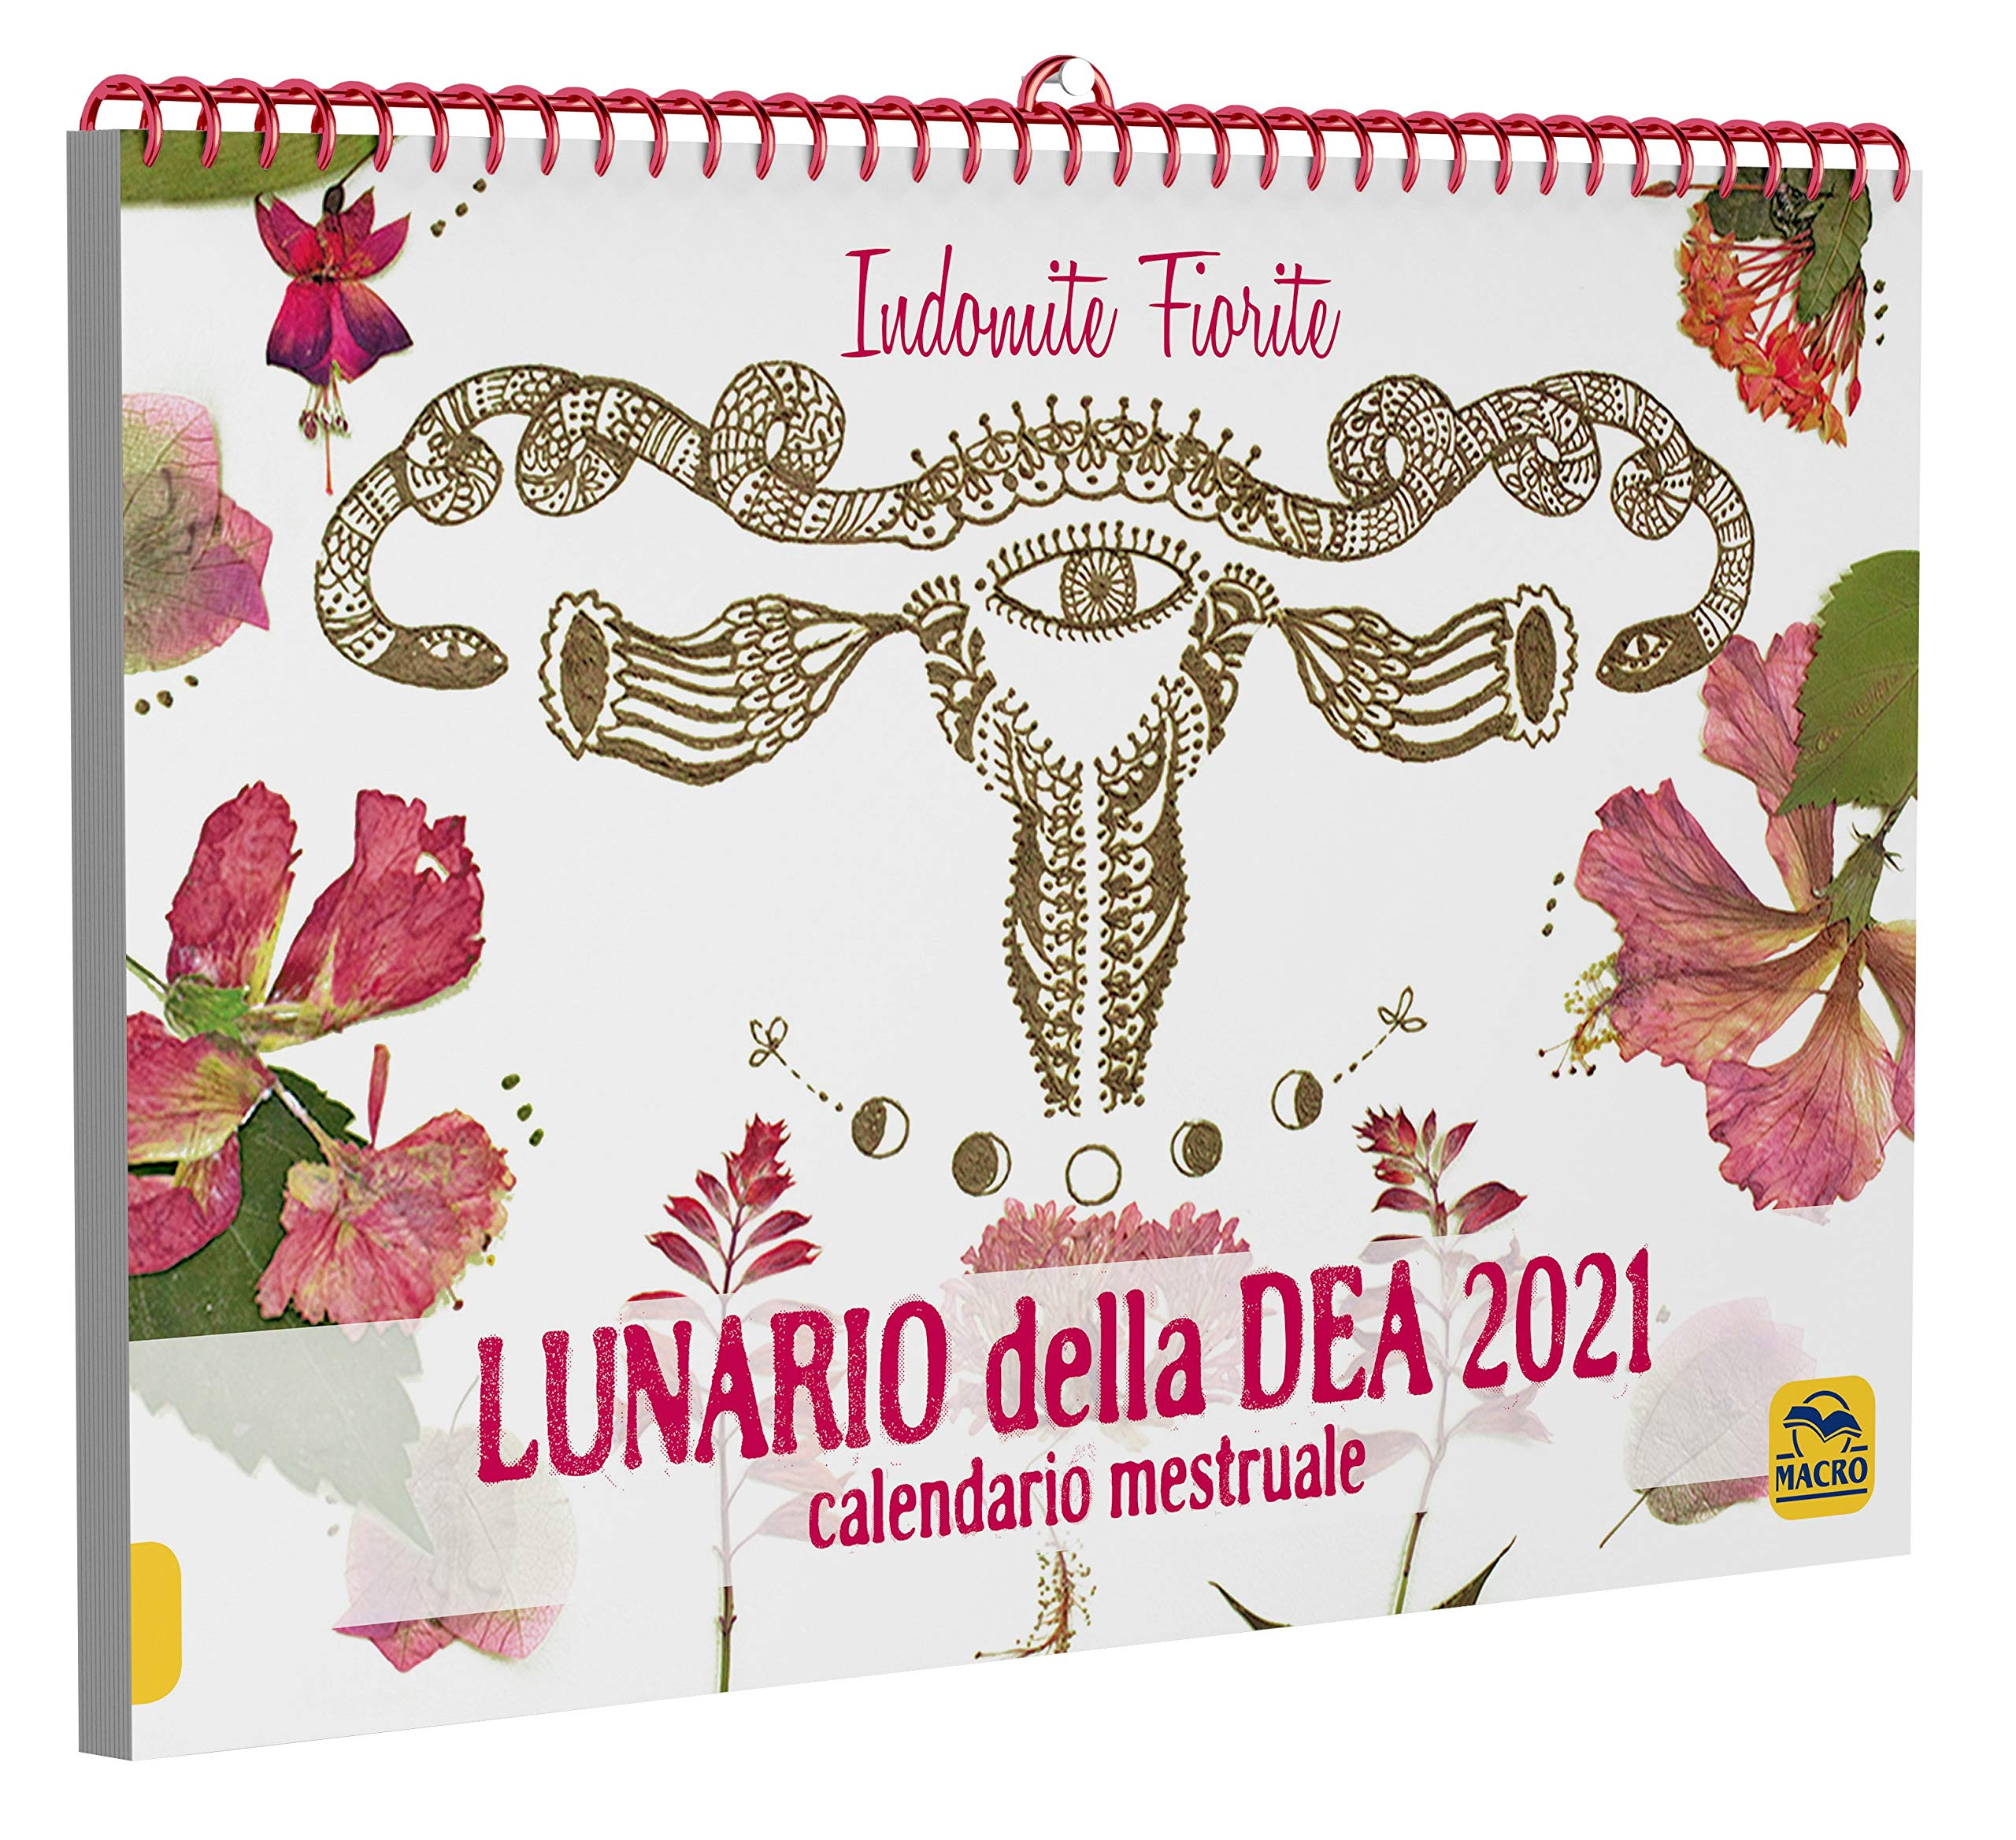 Amazon.it: Lunario della dea 2021. Calendario delle donne indomite